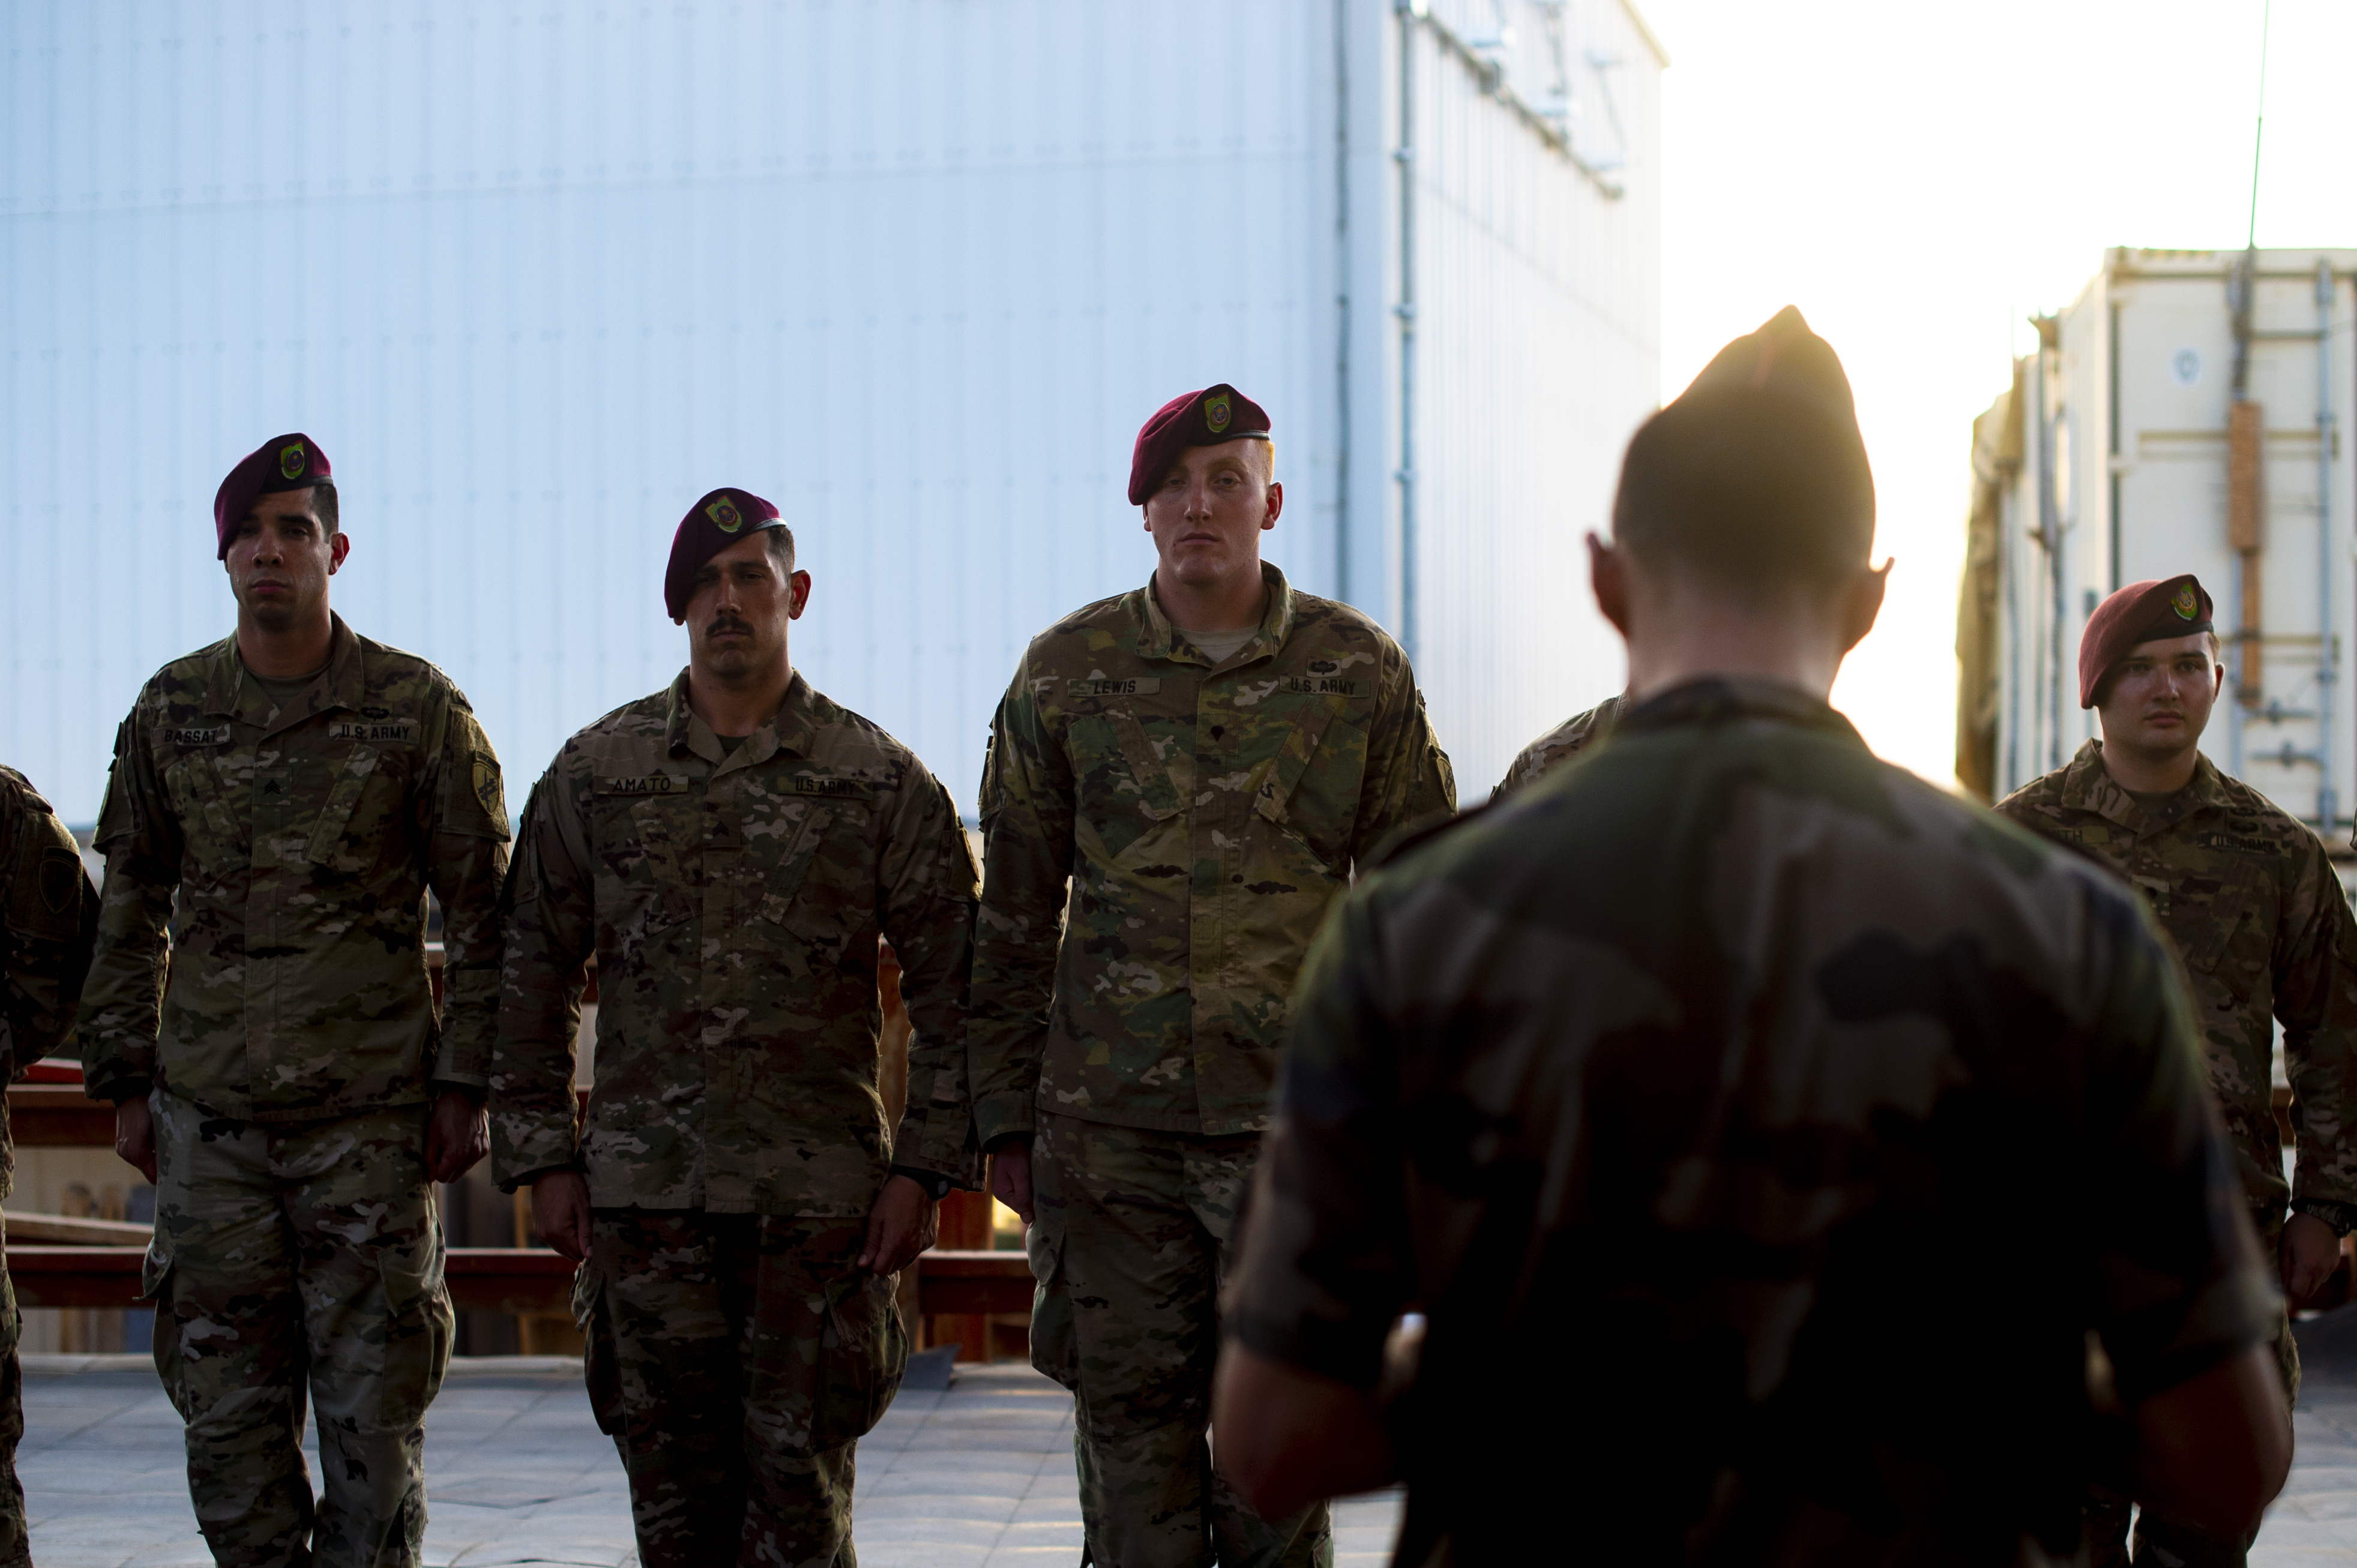 U.S. Army Soldiers of the 404th and 407th Civil Affairs teams stand together to receive their French Jump Wing badges from French jump masters on Camp Lemonnier, Djibouti, Oct. 1, 2018. The team members received their badges for jumping with the French in celebration of the Feast Day of Archangel Michael, the patron saint of paratroopers. (U.S. Air Force photo by Senior Airman Scott Jackson)